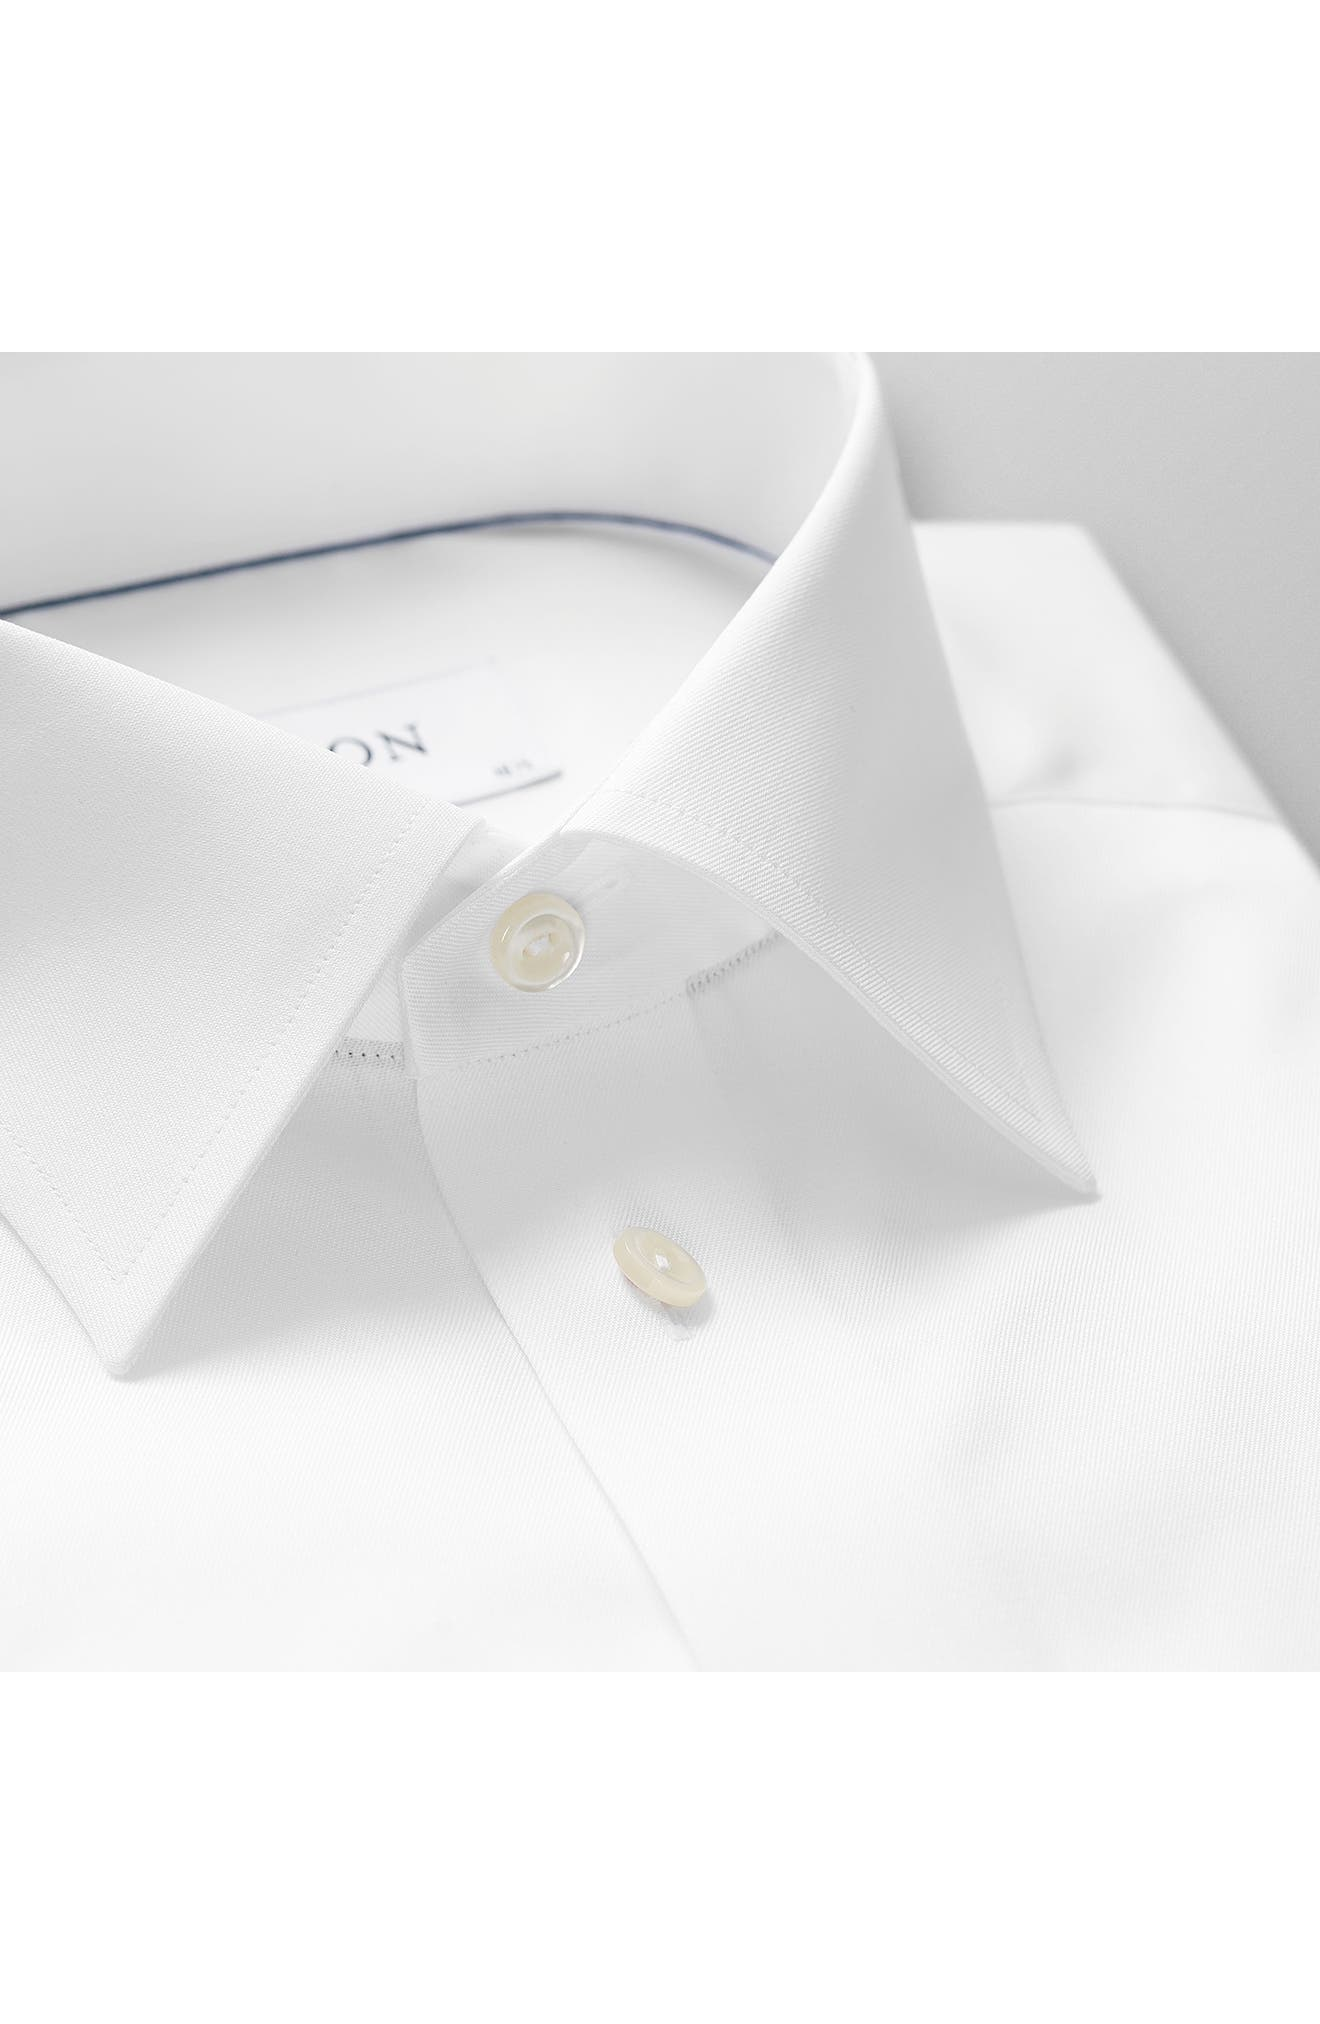 Classic Fit Twill Dress Shirt,                             Alternate thumbnail 5, color,                             WHITE